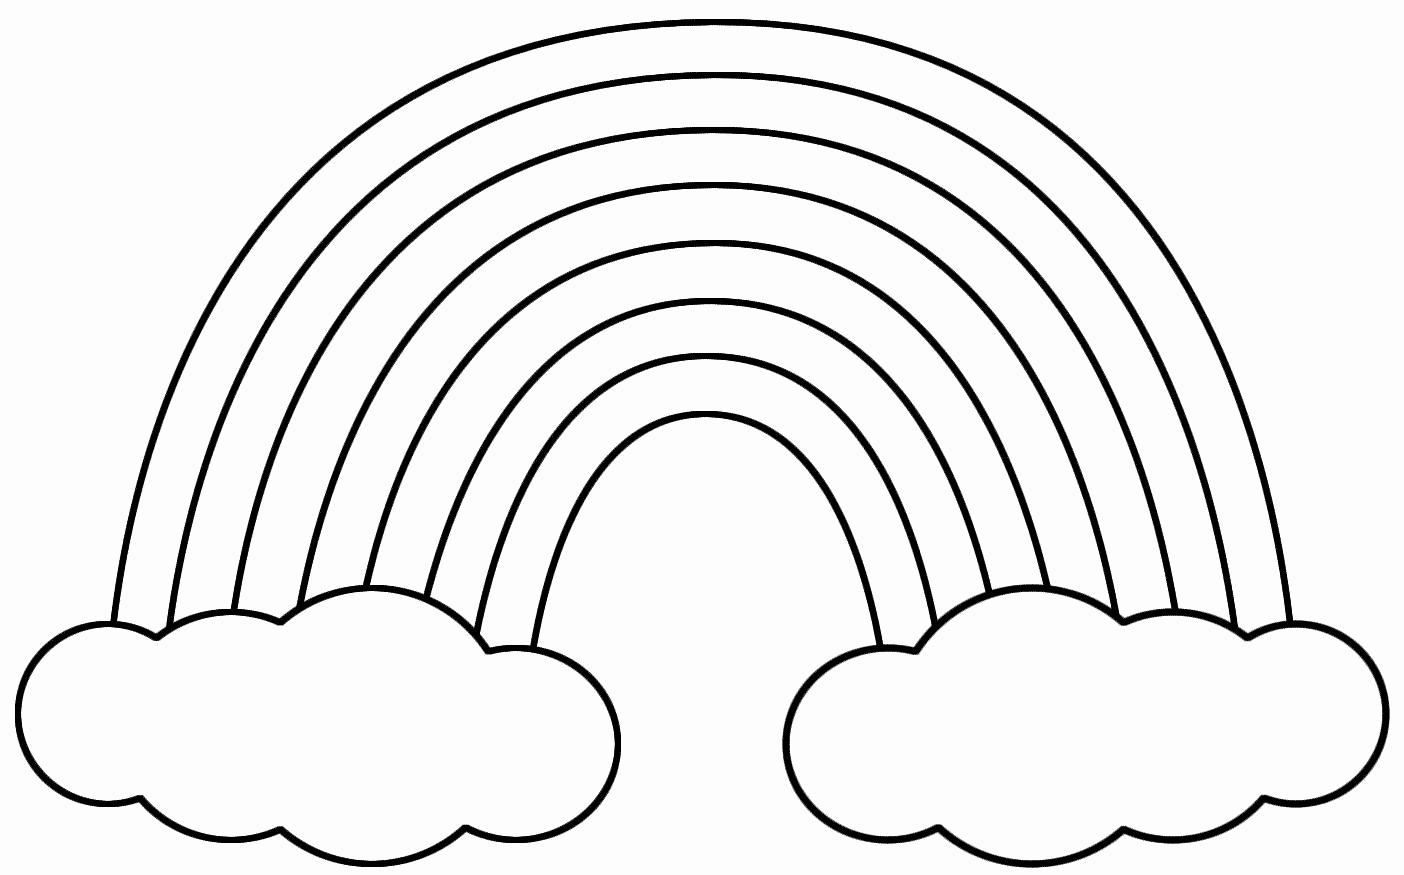 Cloud Template Printable New Free Printable Cloud Template Download Free Clip Art